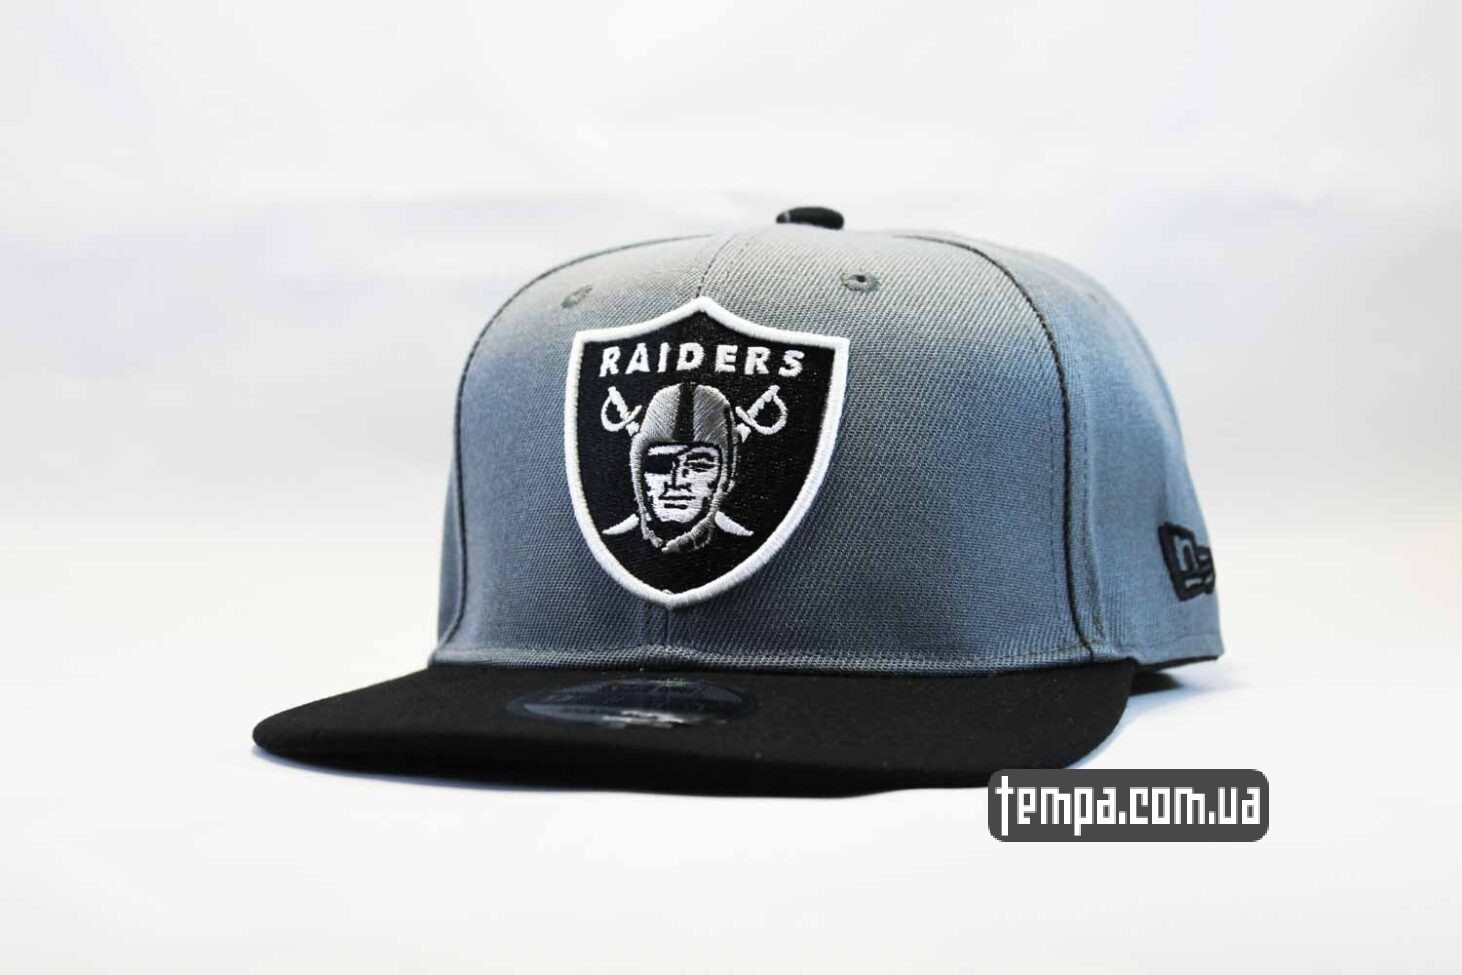 кепка snapback Raiders NewEra 9fifty серая